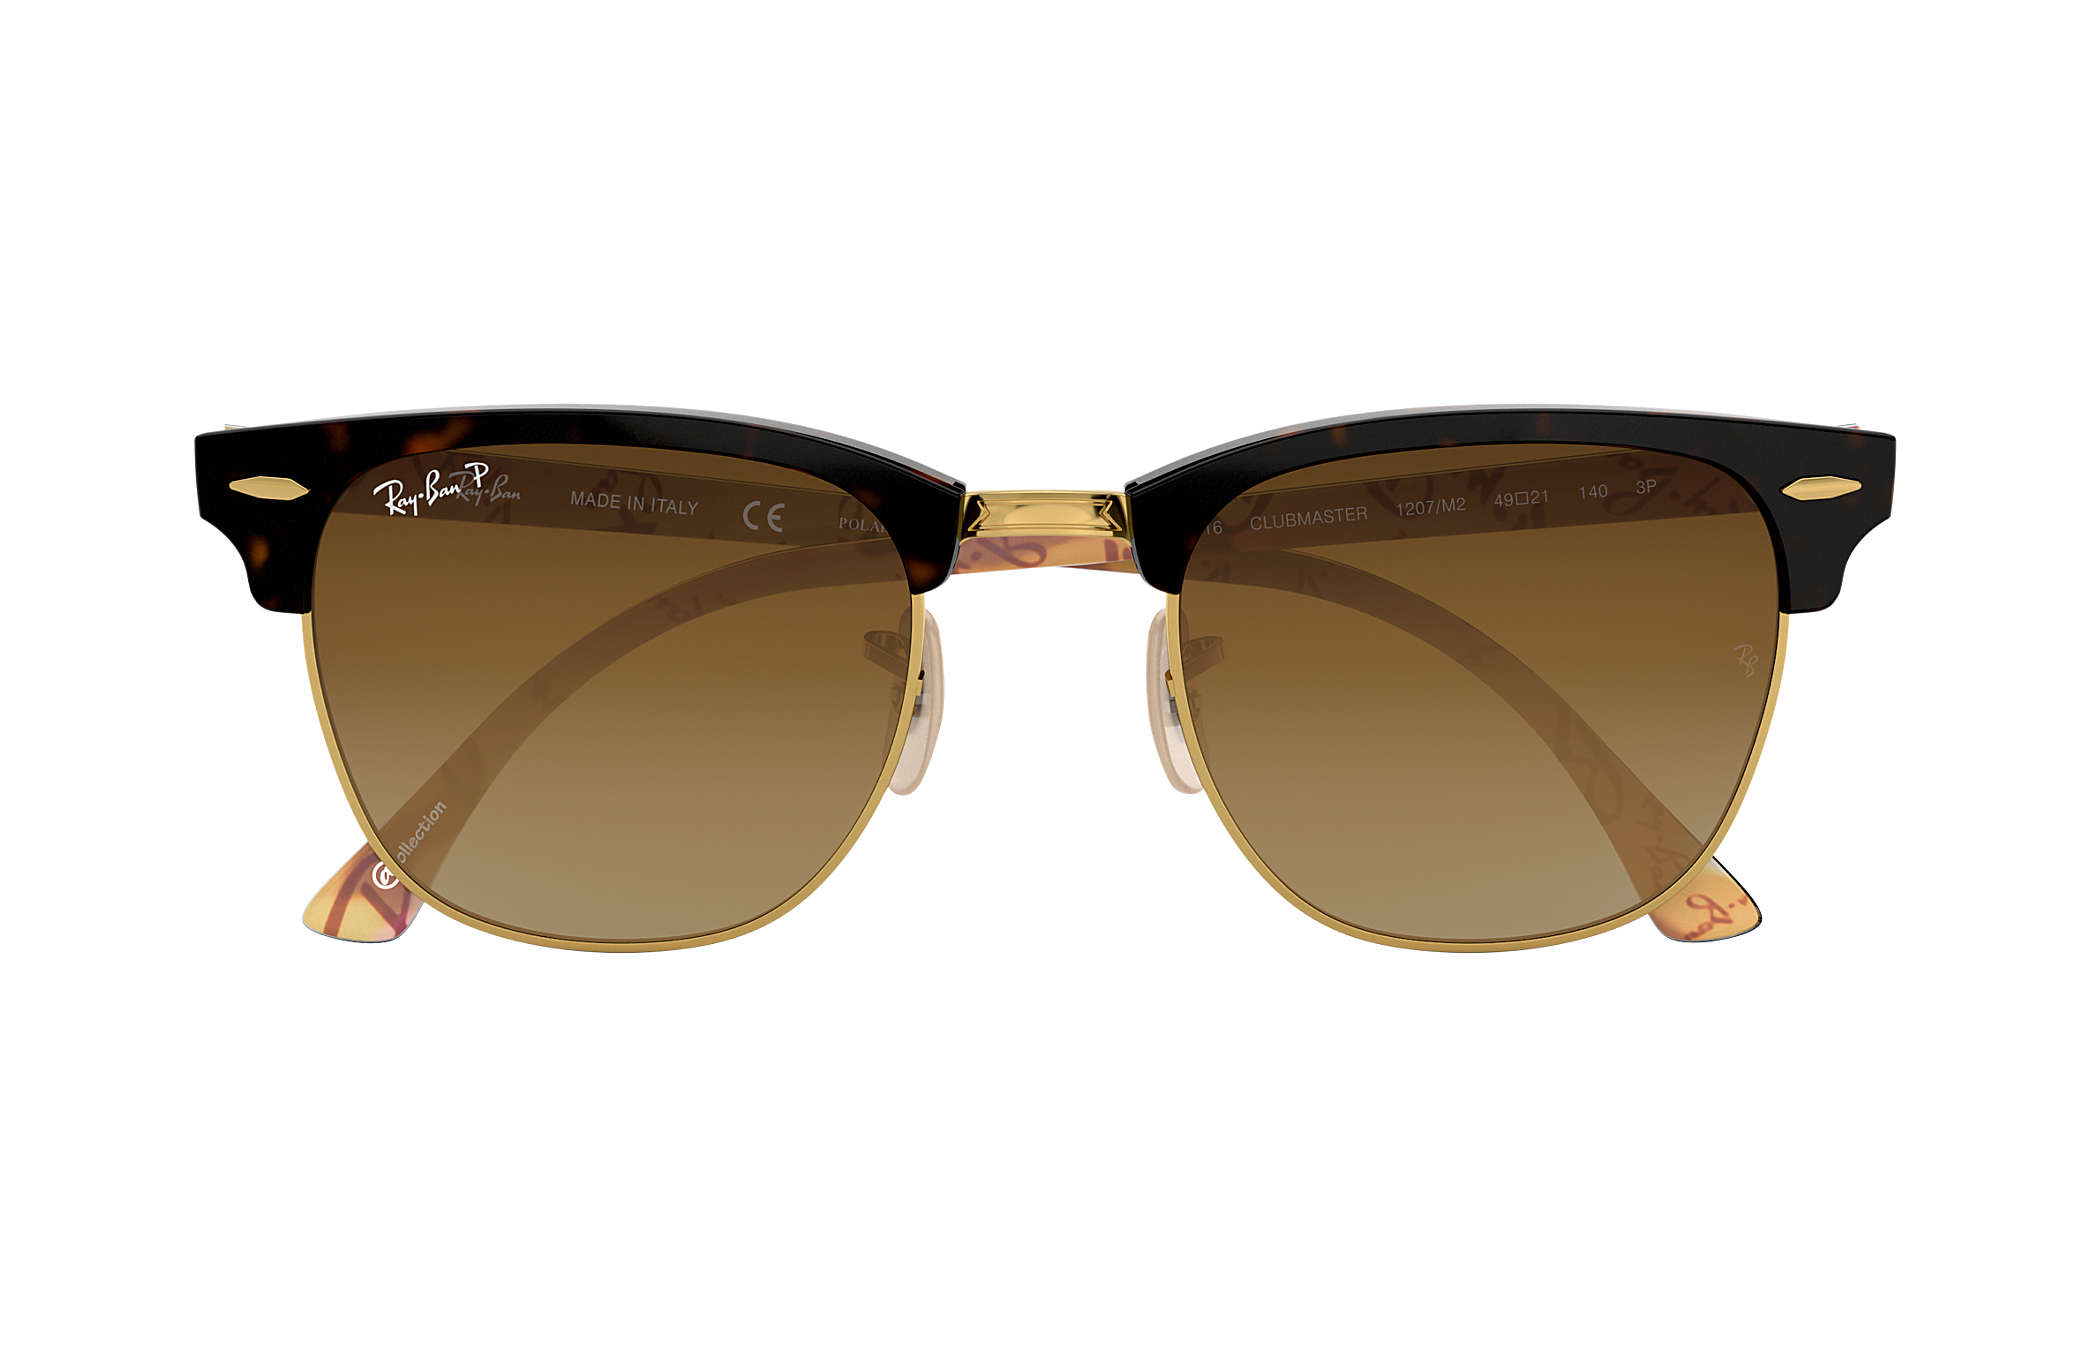 f5bcba19a796 hot ray ban 0rb3016 clubmaster collection tortoisegold tortoisemulticolor  sun 737a2 72dd3